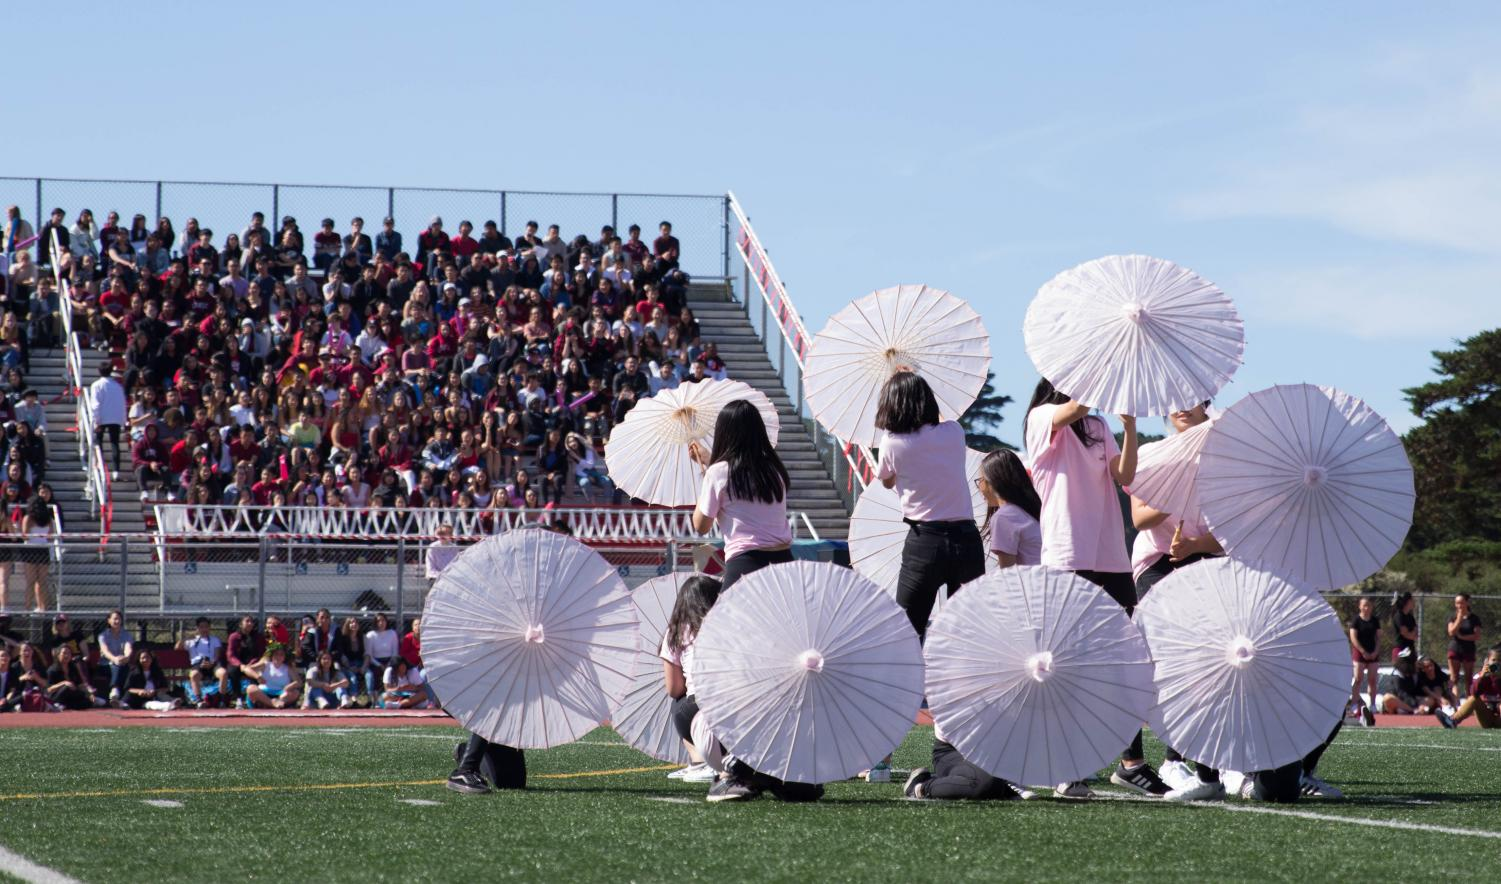 Class+of+2021+opens+up+their+parasols+as+part+of+their+routine.